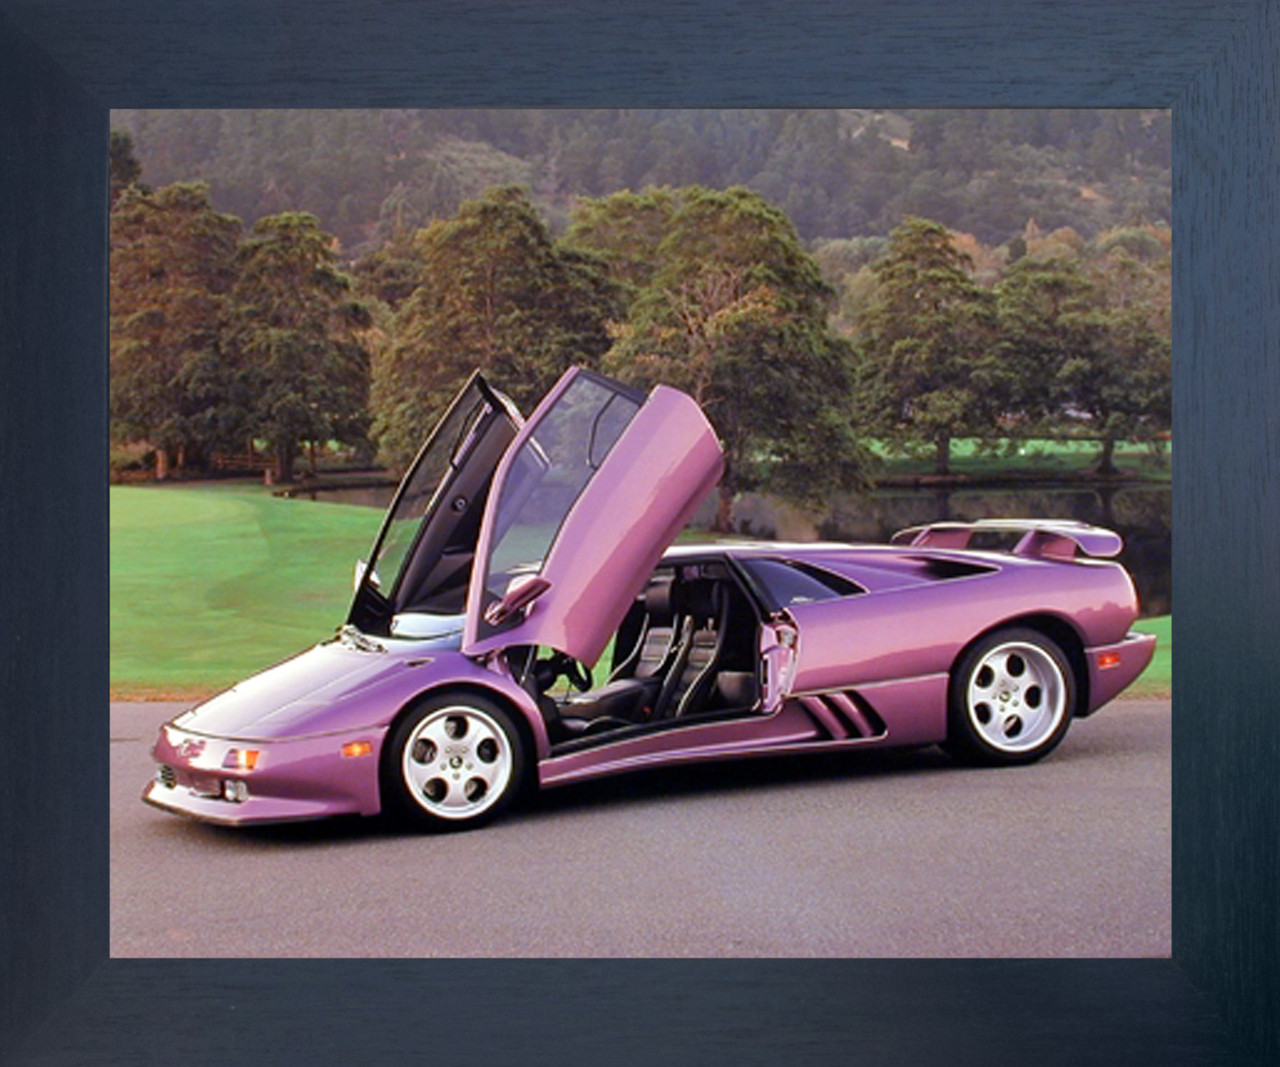 Lamborghini Diablo Open Door View Automobile Car Wall Decor Espresso